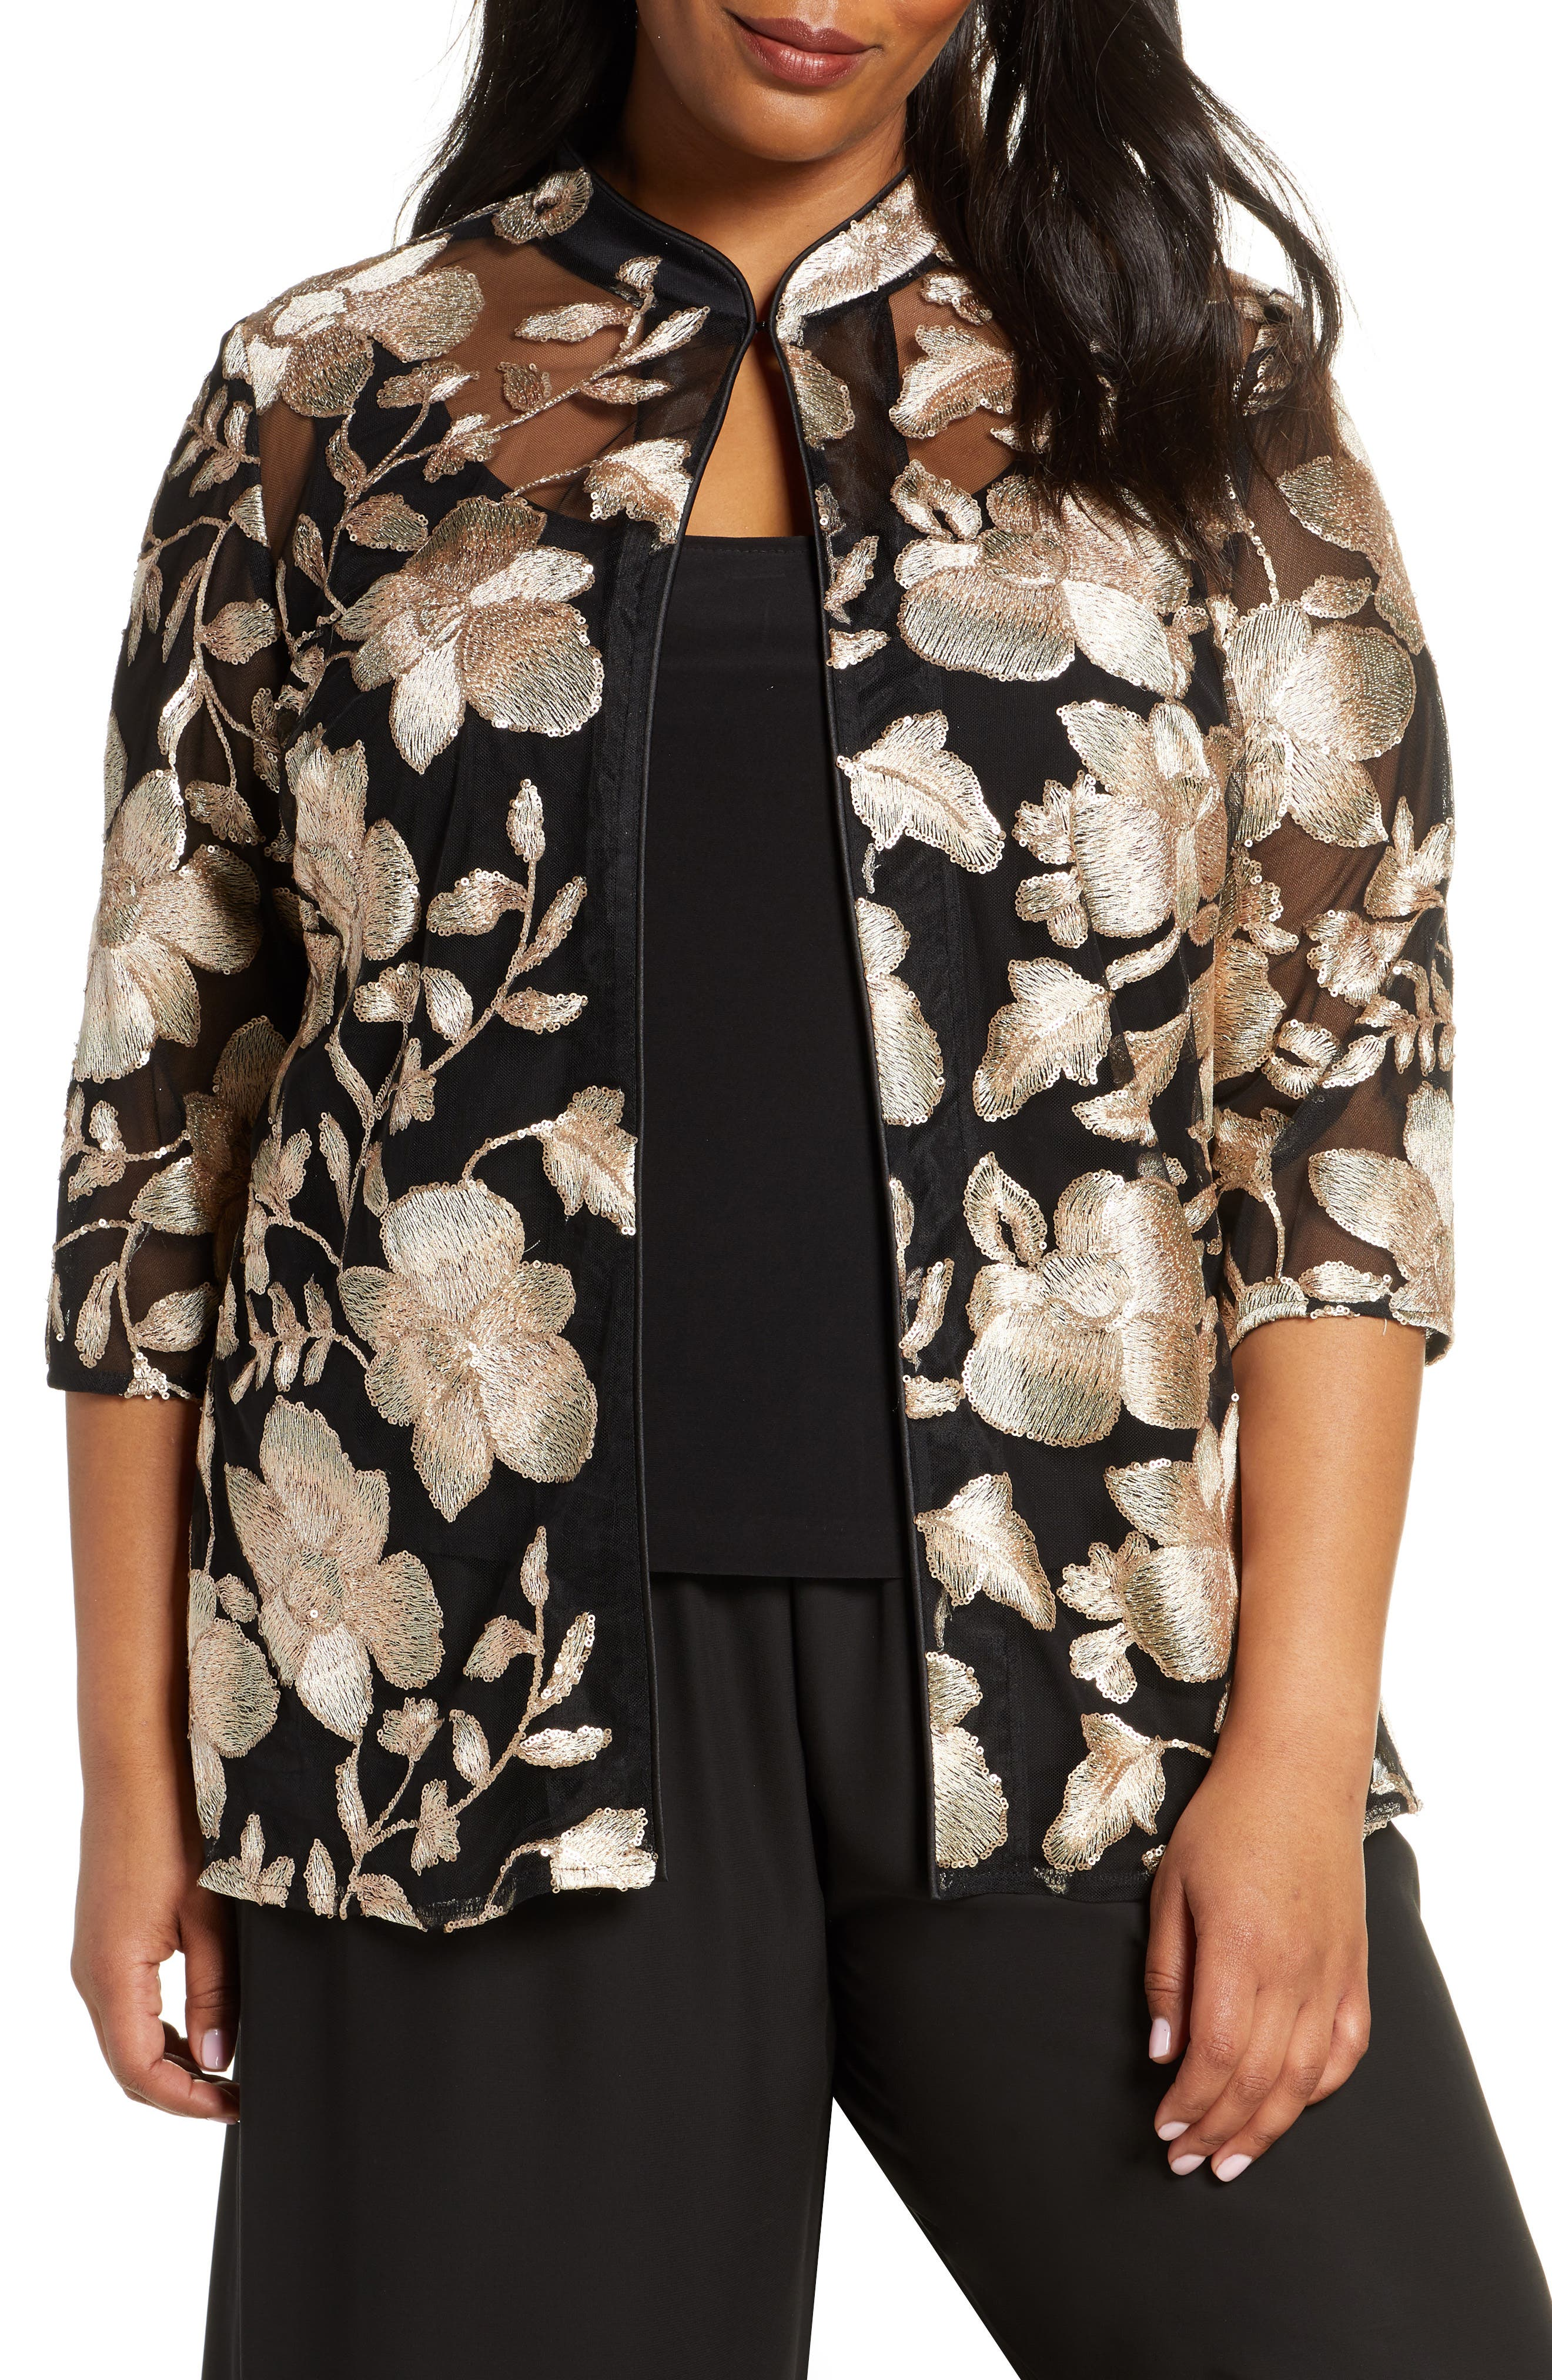 Plus Size Alex Evenings Embroidered Jacket & Camisole Set, Black